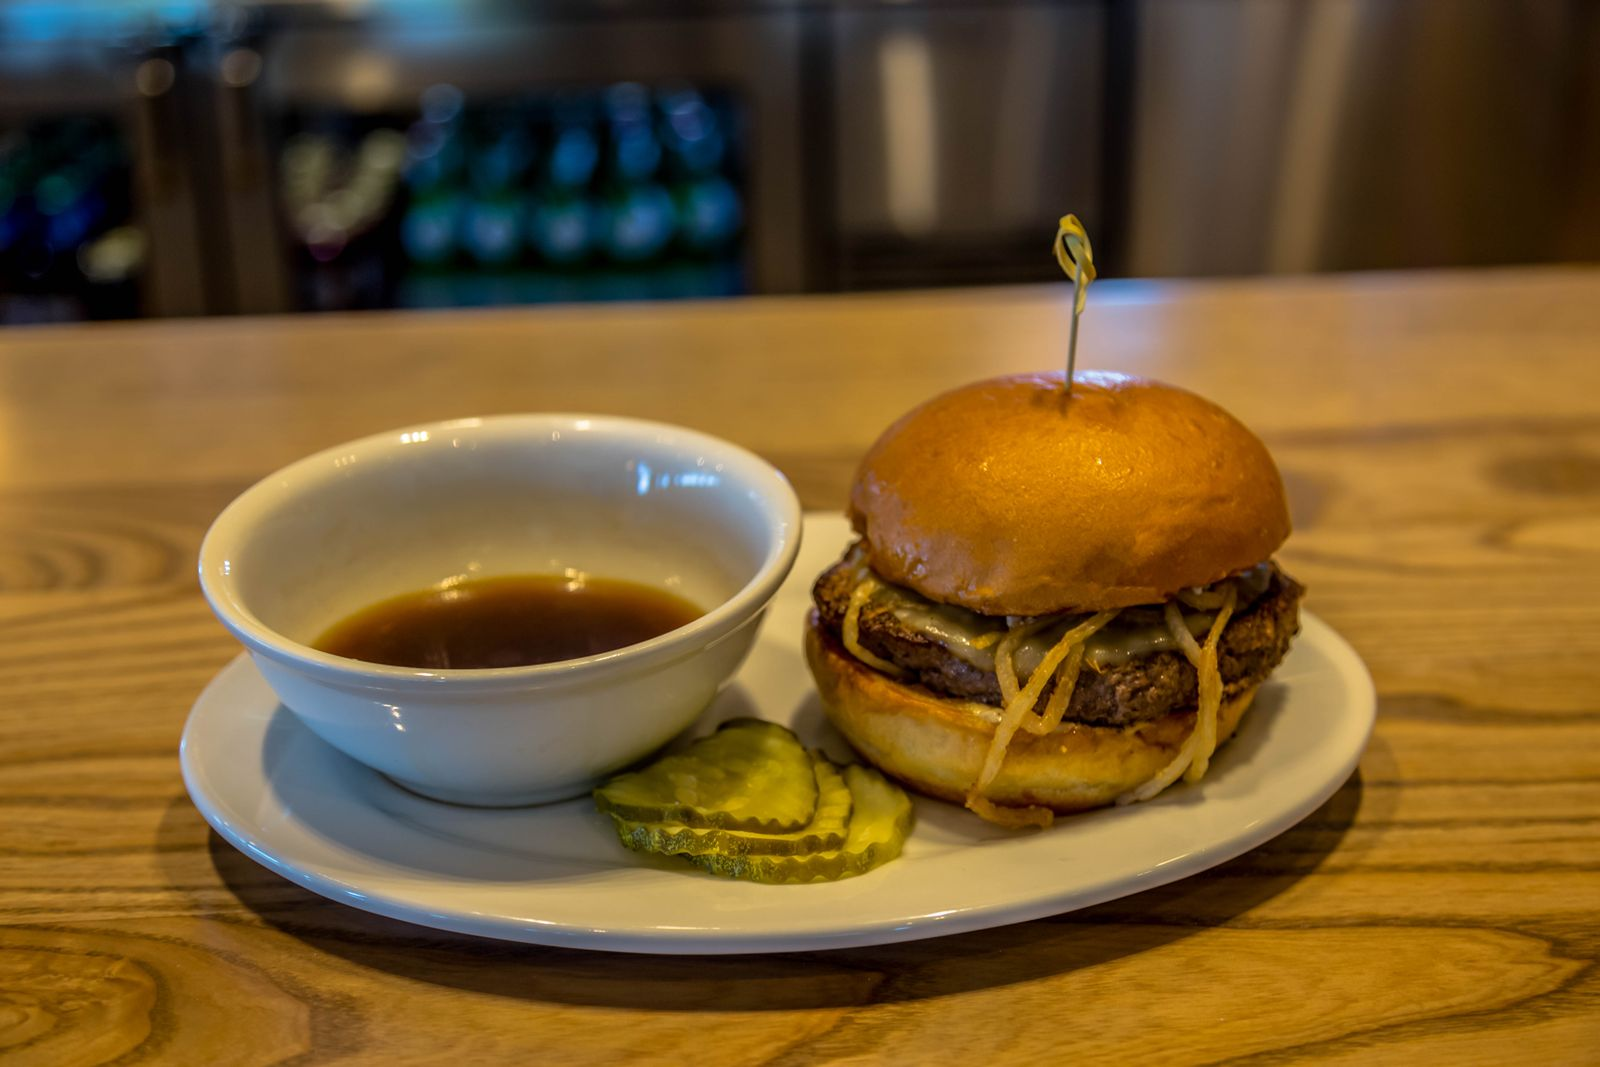 The Prime Rib Burger is a Certified Angus Beef & Prime Rib Blended Patty, Provolone Cheese, Fried Onion Strings, Parmesan Horseradish Créme & served with Aus Jus.